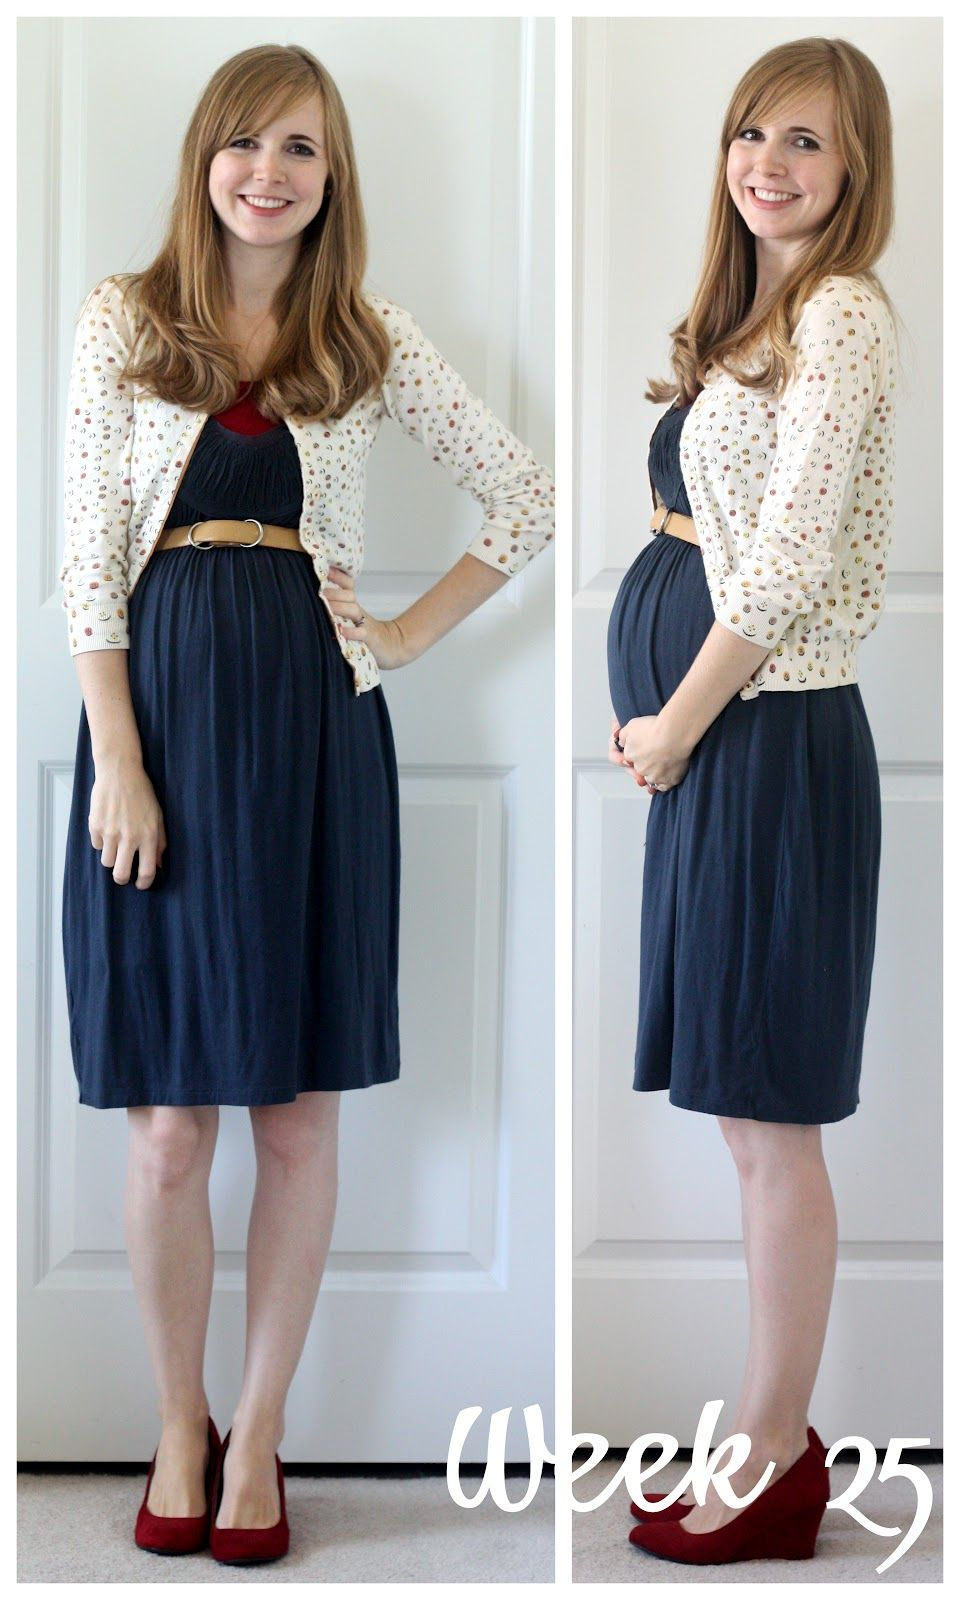 a54e7392d202d Everyday Reading: Awesome pregnancy outfit. Now I need a stretchy navy dress .